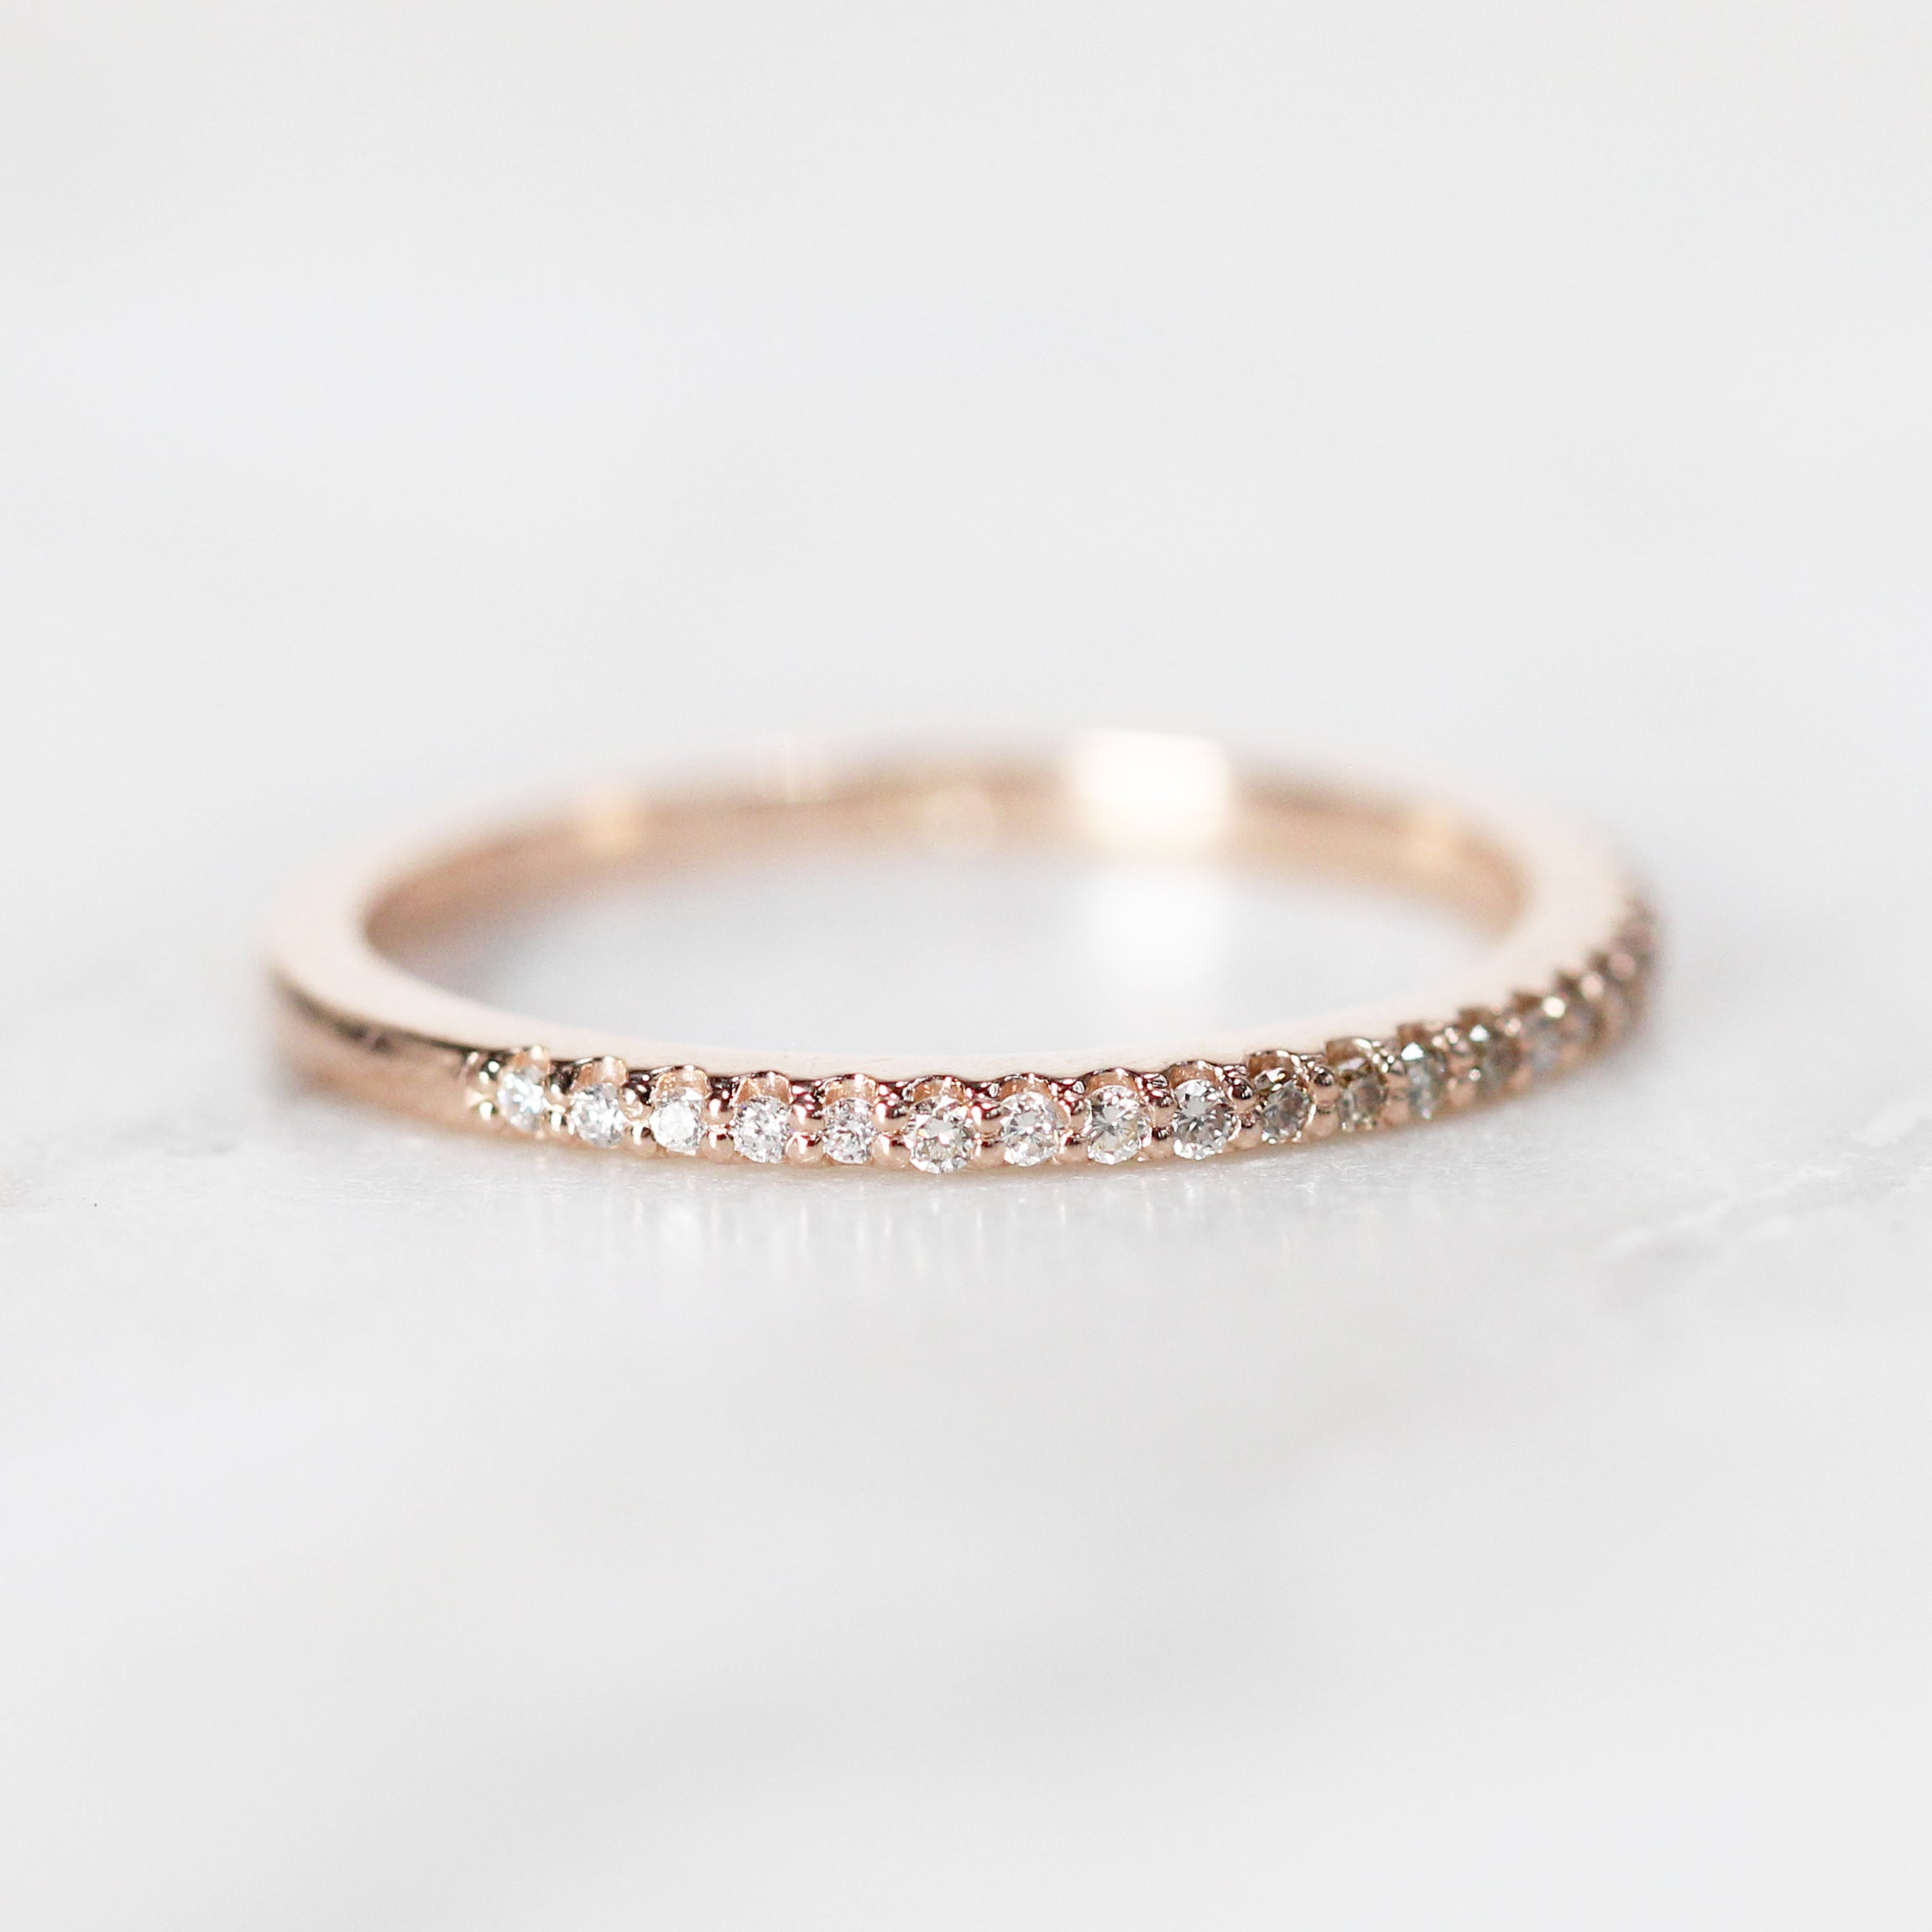 Constance - Pave set, minimal white to champagne to orange diamond wedding stacking band - Salt & Pepper Celestial Diamond Engagement Rings and Wedding Bands  by Midwinter Co.